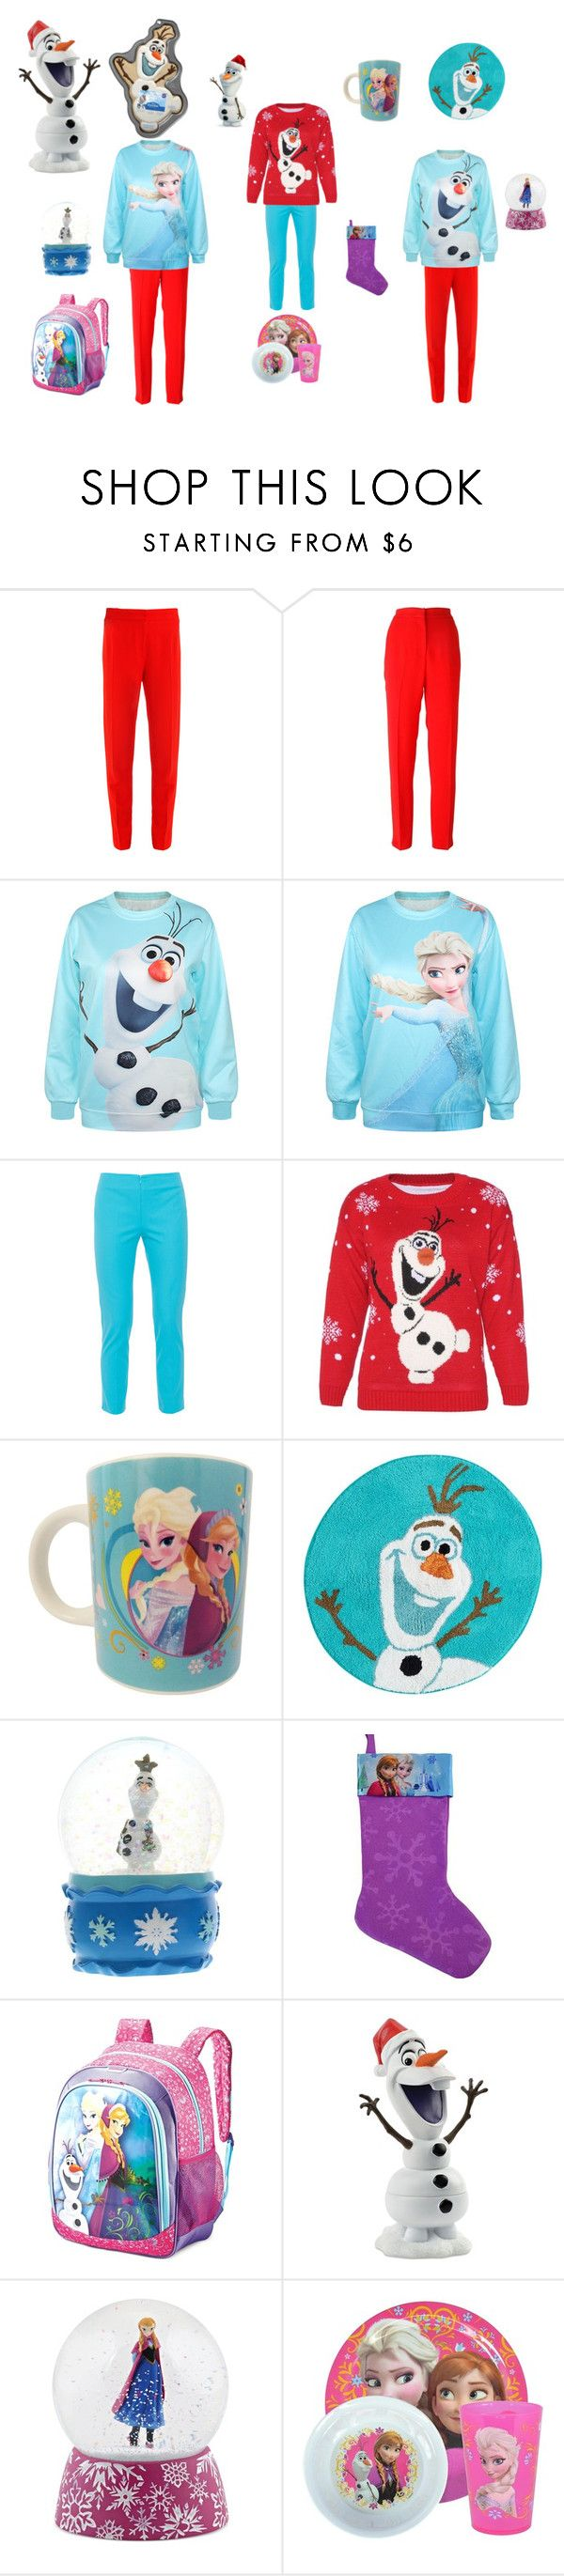 frozen kit by alicejudo on Polyvore featuring mode, Disney, MSGM, Raoul, Peace of Cloth, American Tourister, Department 56 and Jay Franco & Sons